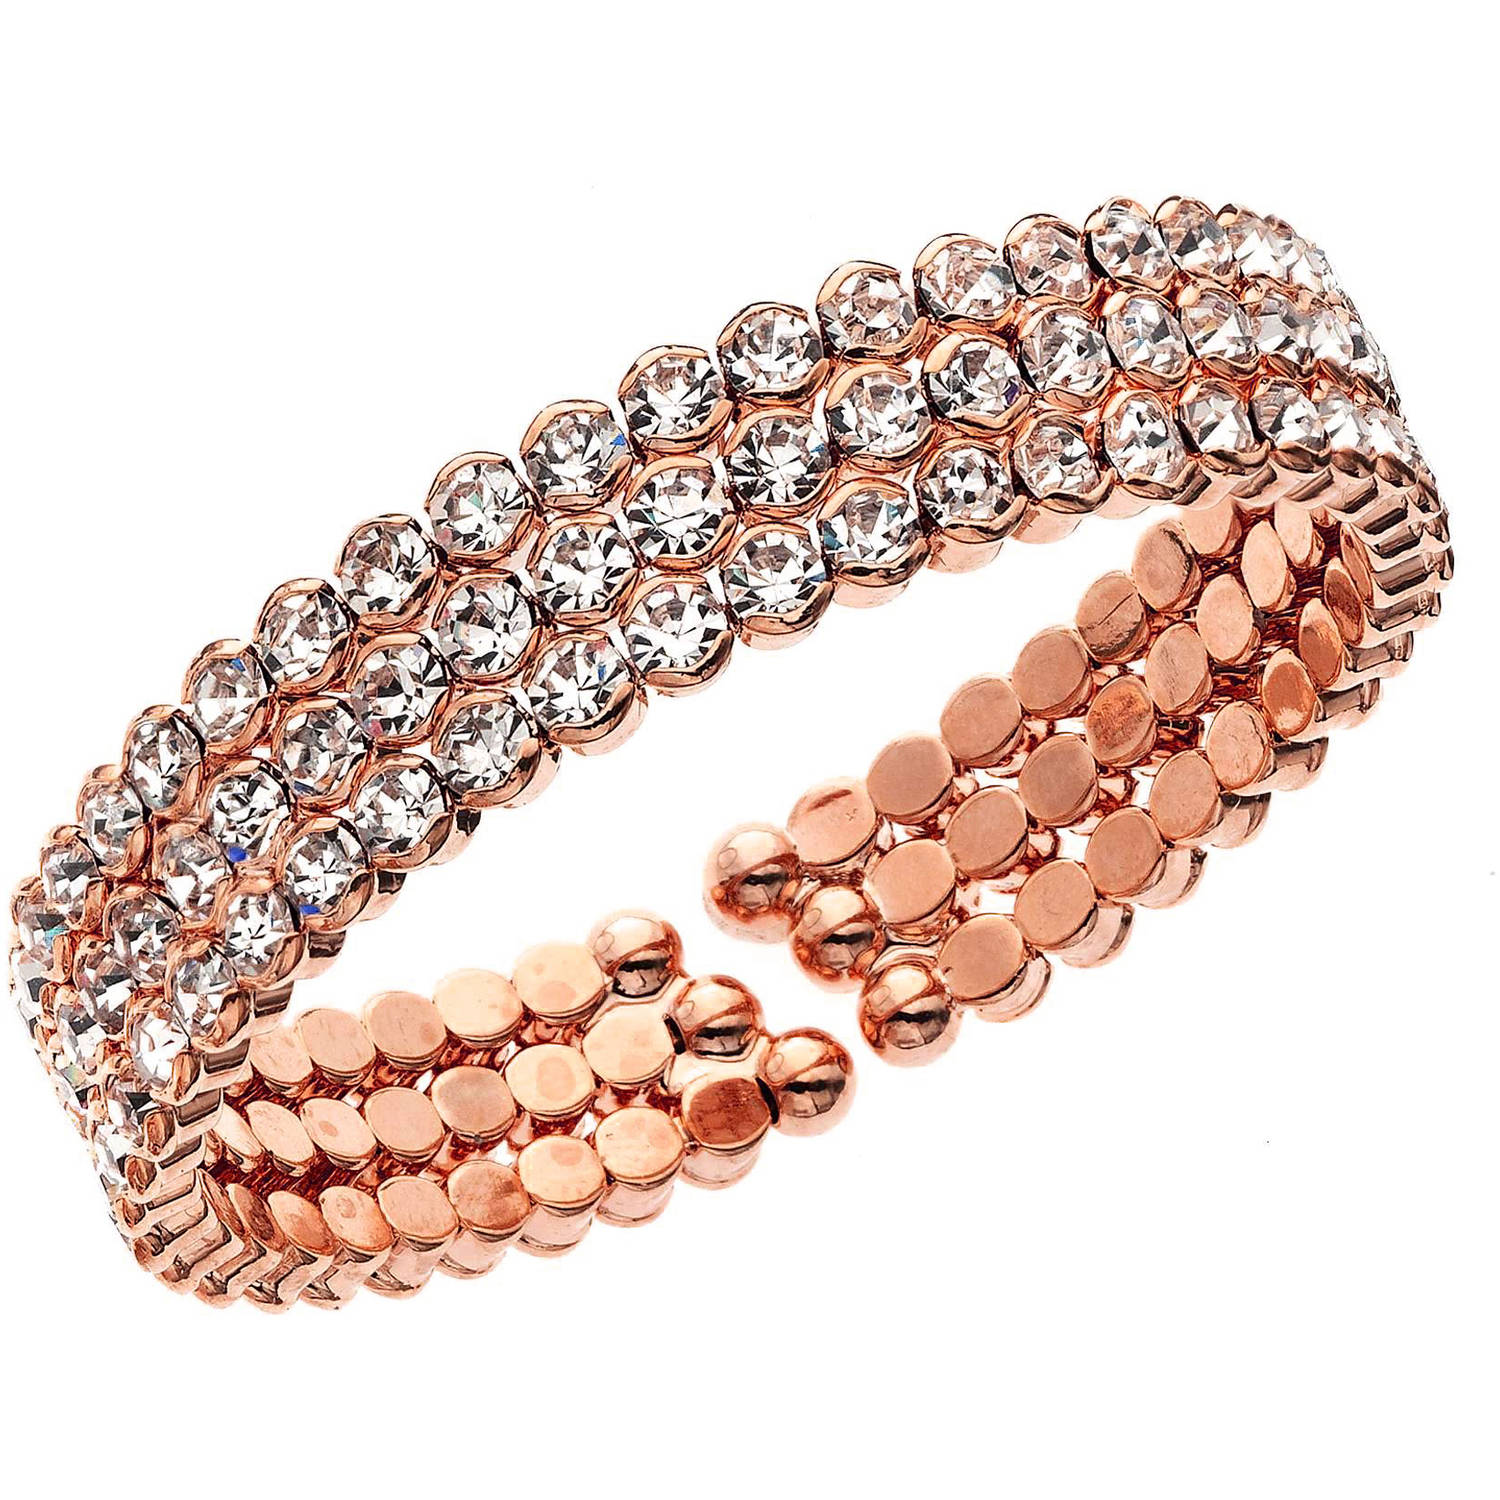 X & O 14kt Rose Gold-Plated Three-Row Honeycomb Cuff Bracelet, One Size